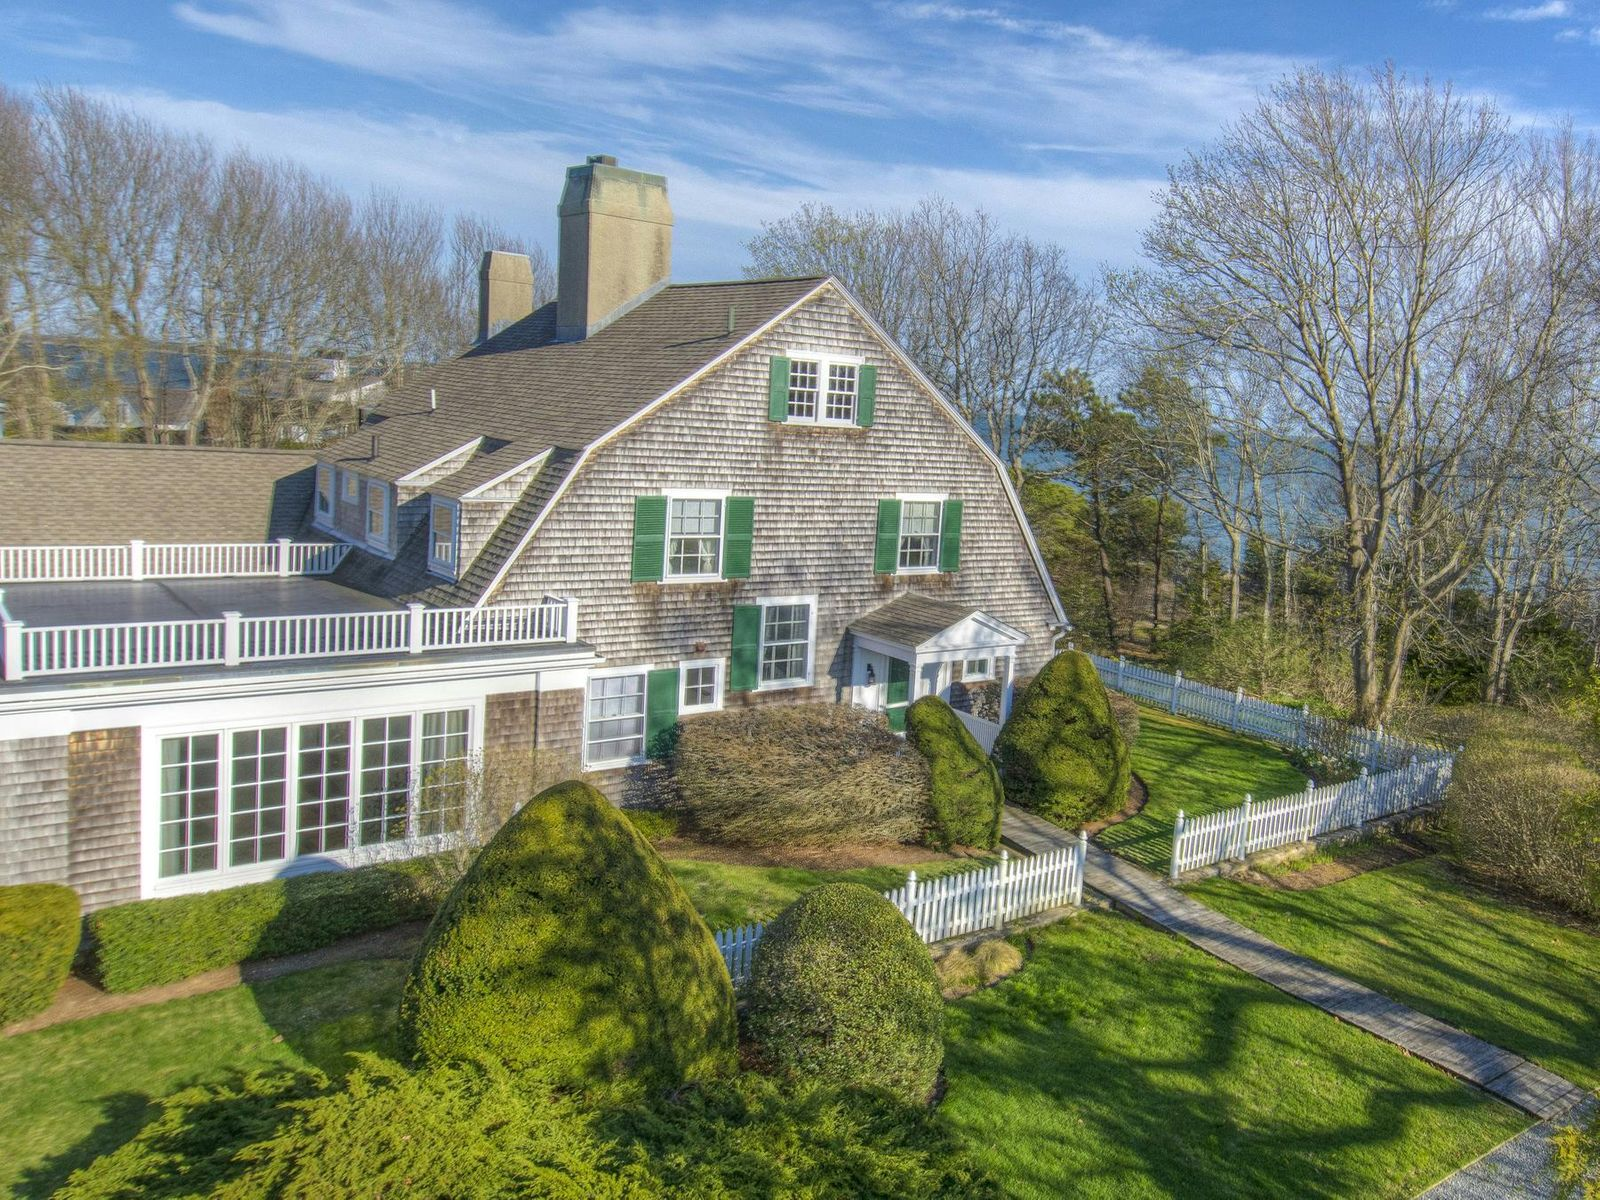 Hyannis Port Waterfront Estate, Hyannis Port MA Single Family Home - Cape Cod Real Estate